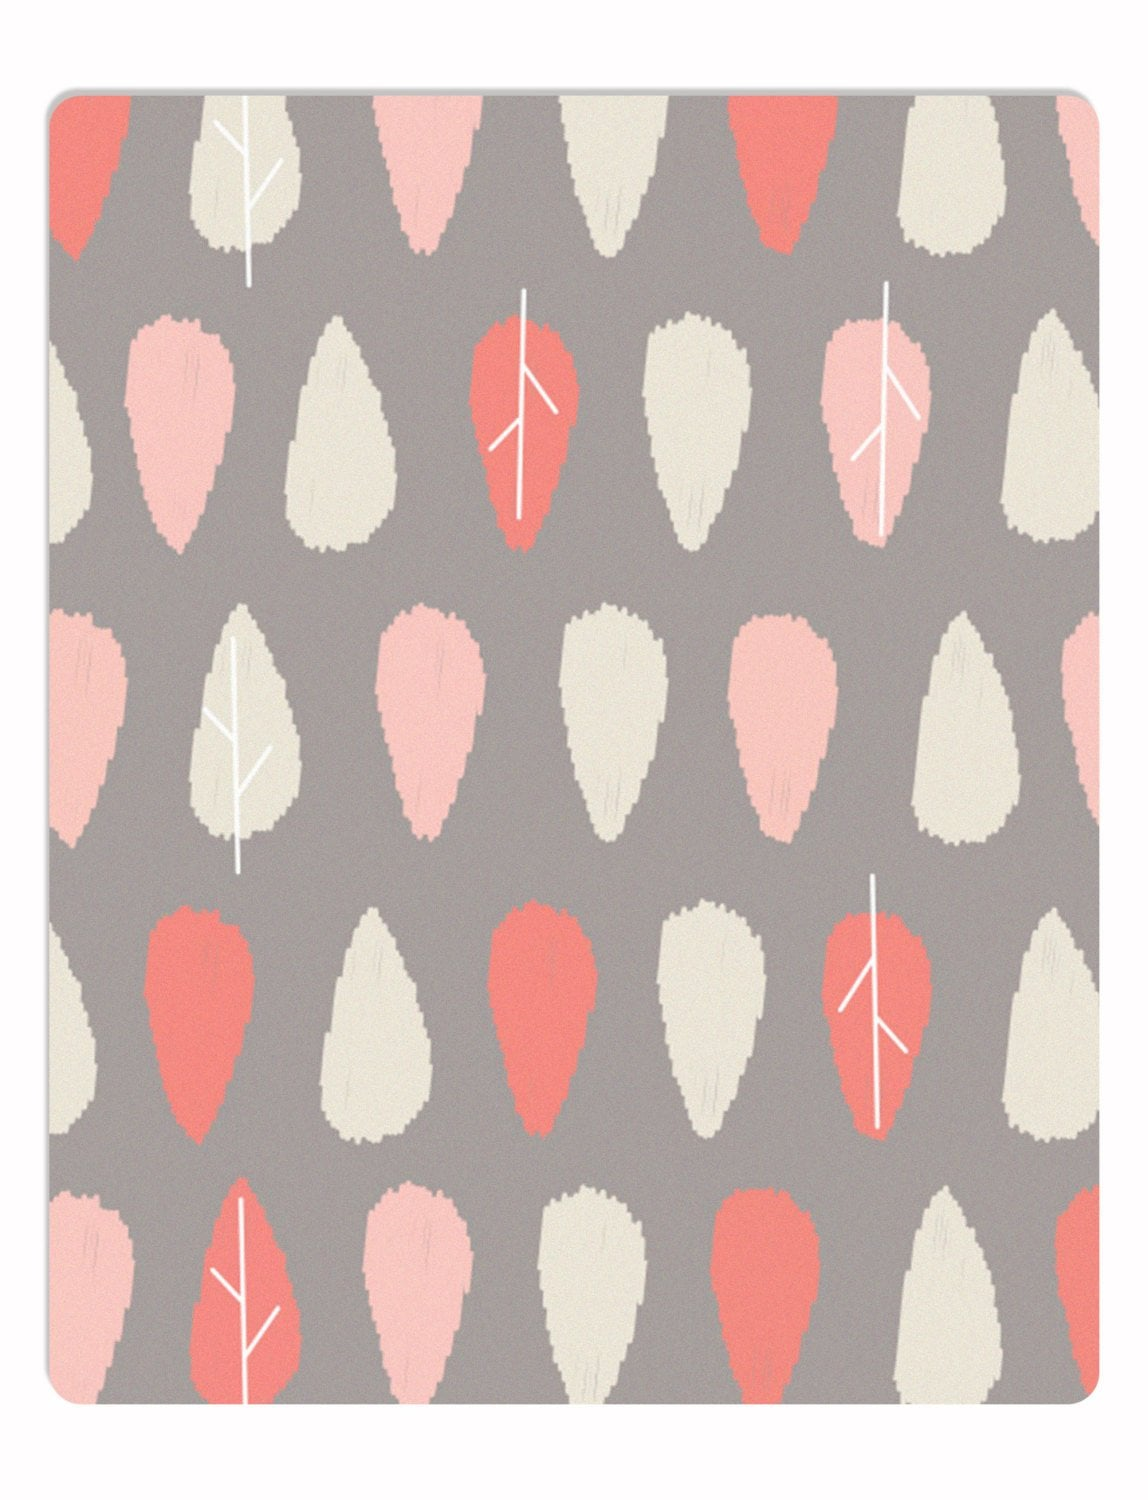 Woodland rug, coral and beige leaves on a cool gray background